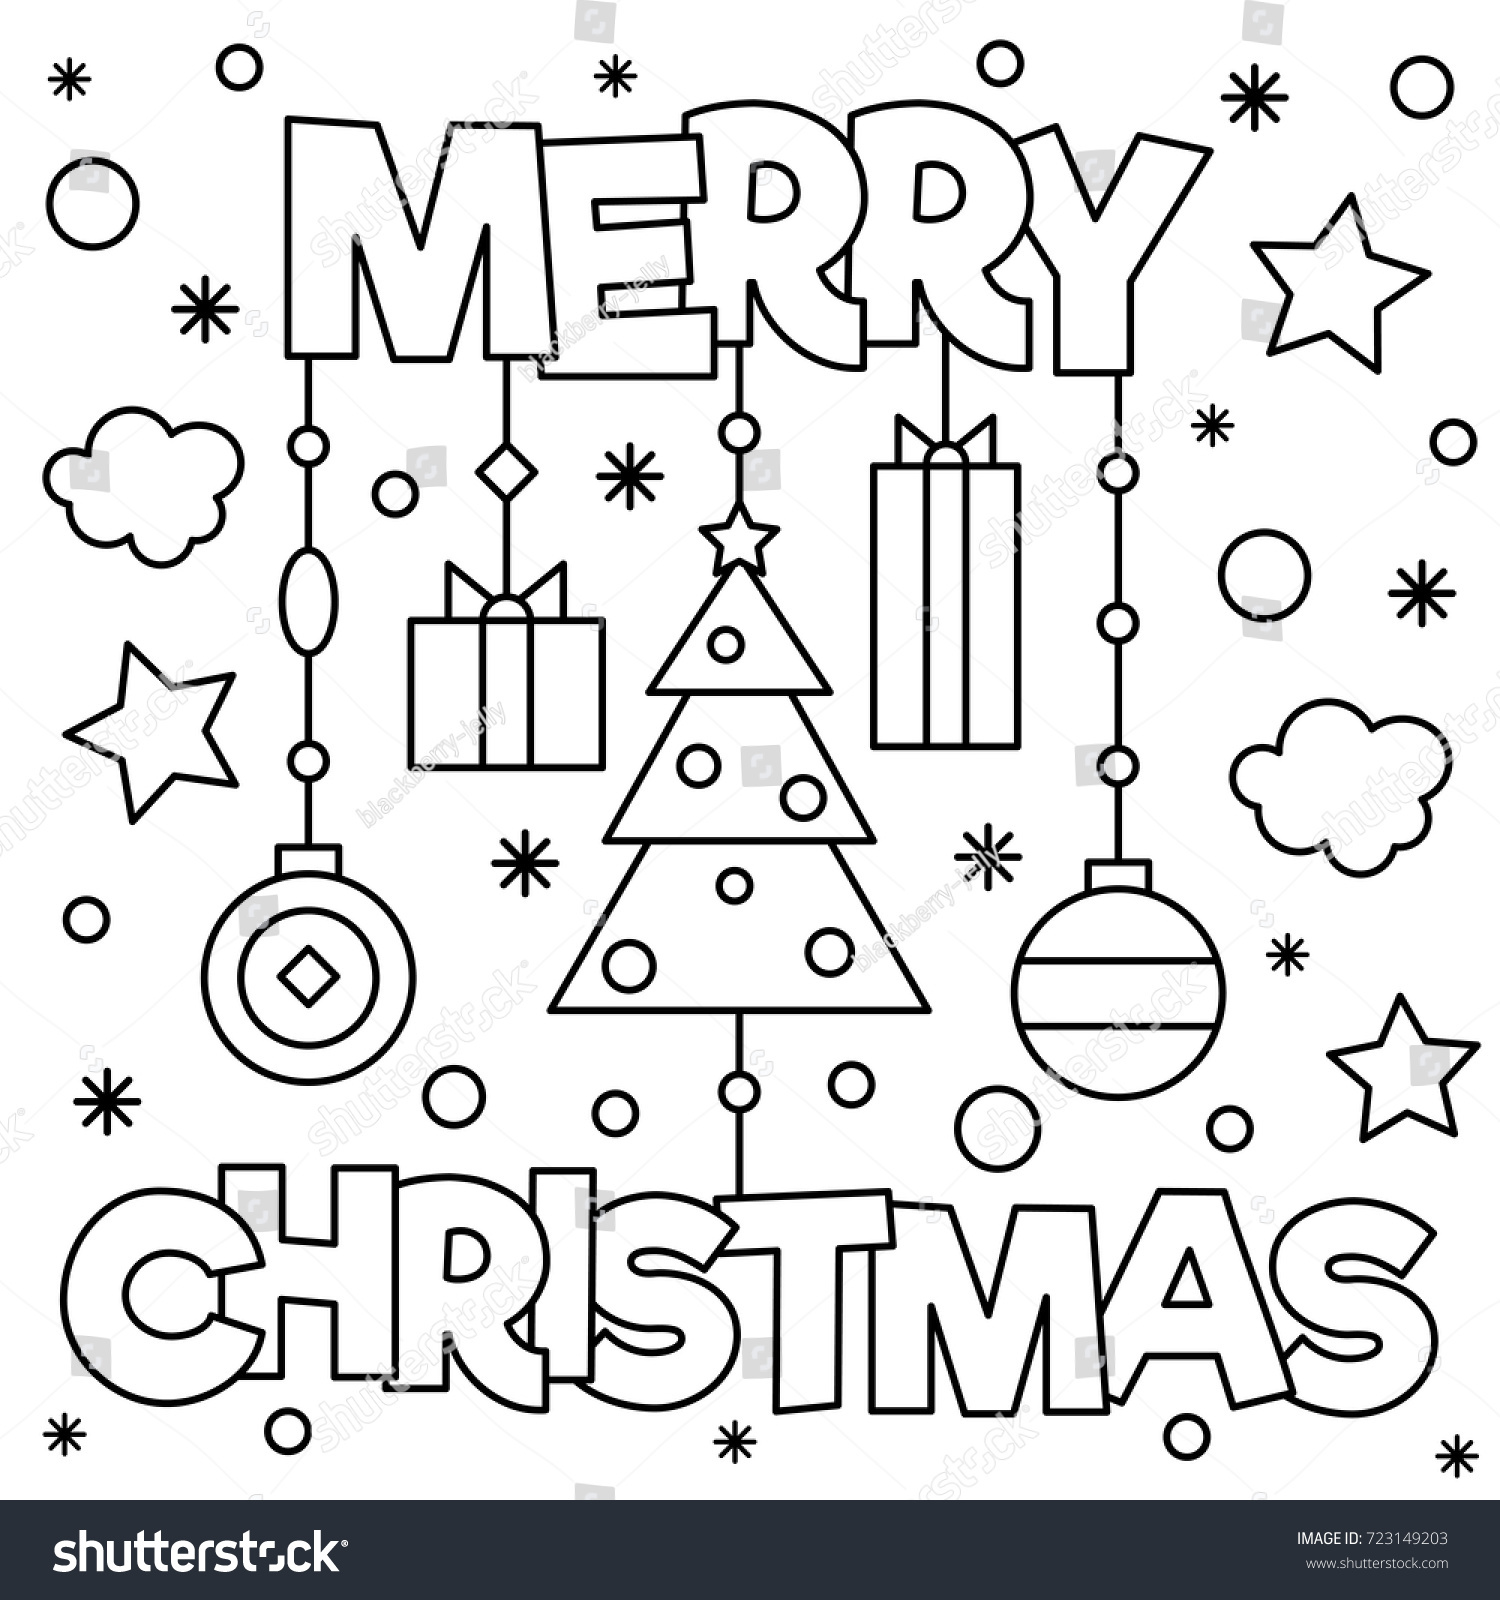 Merry Christmas Coloring Page Vector Illustration Stock